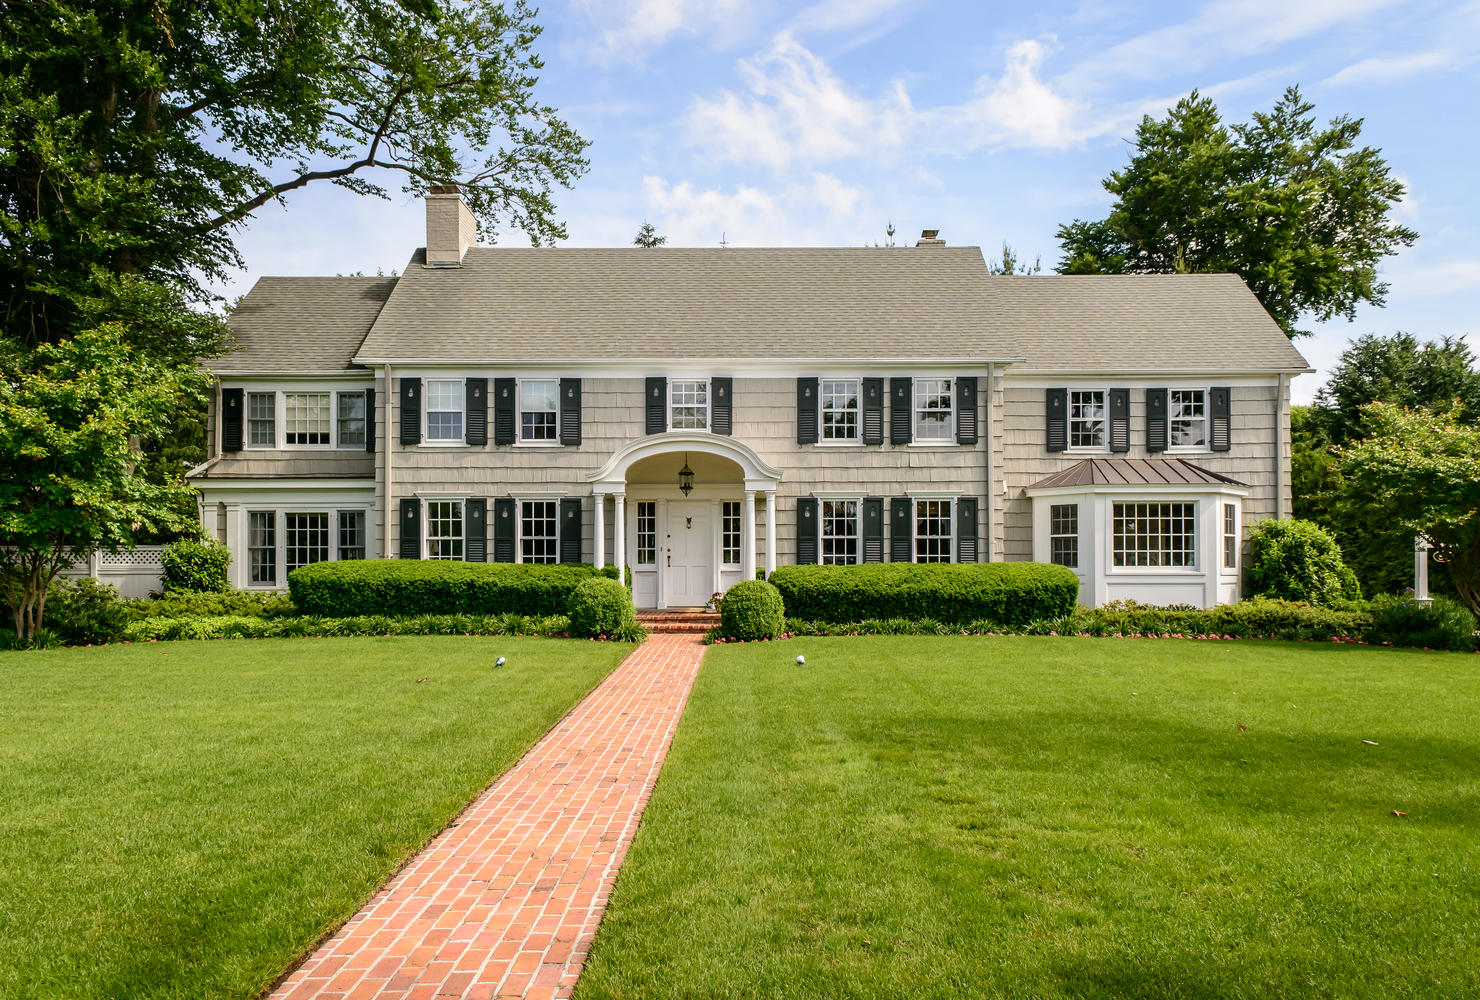 Single Family Home for Sale at Colonial 87 10th St Garden City, New York, 11530 United States